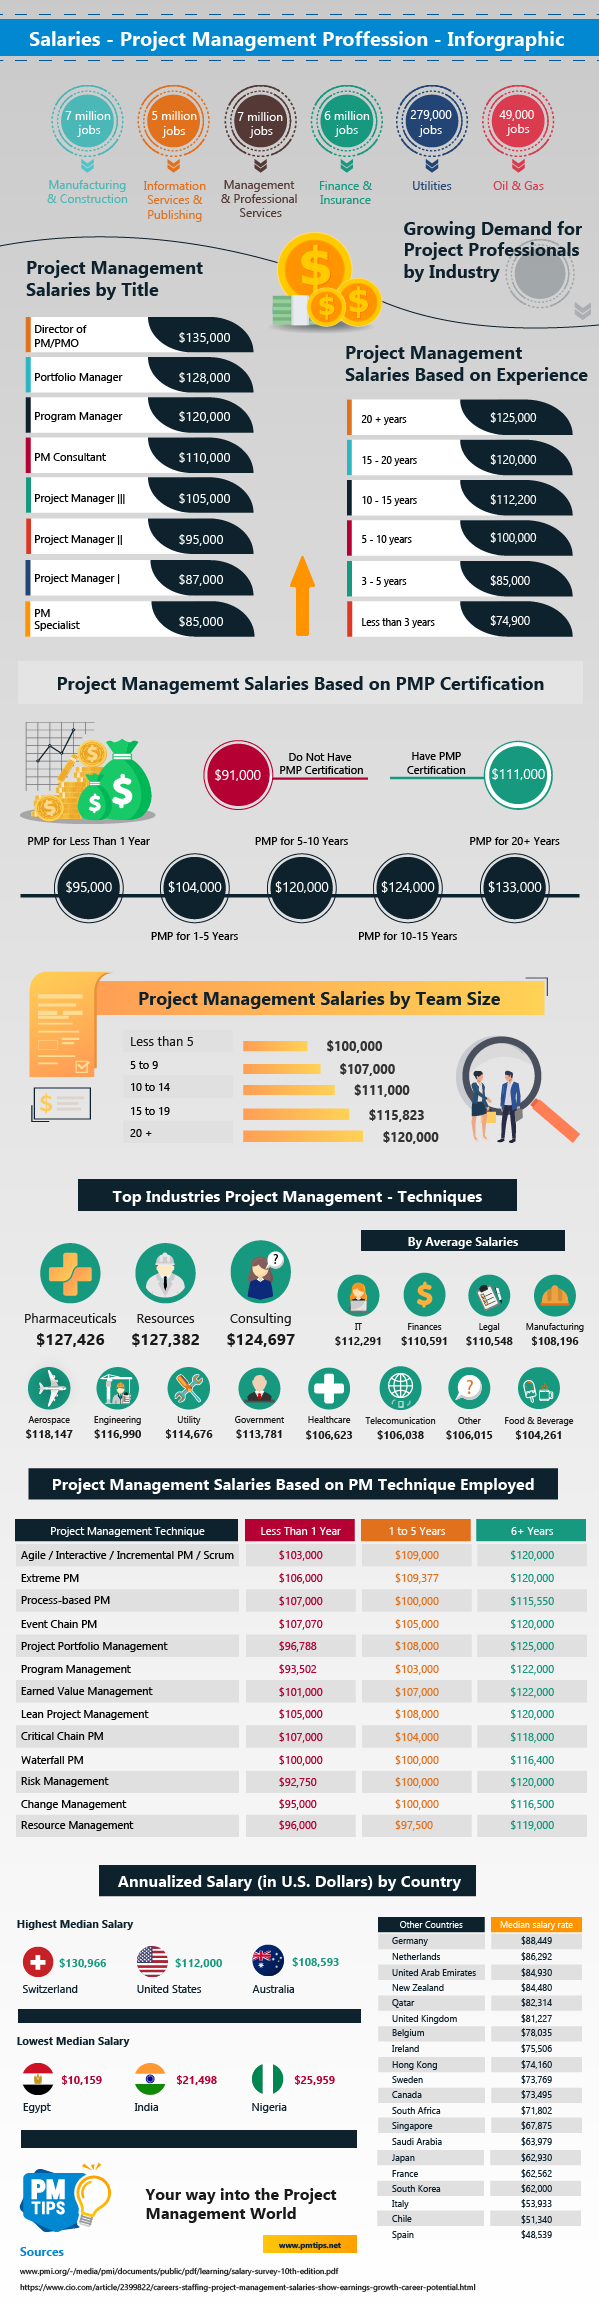 Project Management Annual Median Salaries 2019